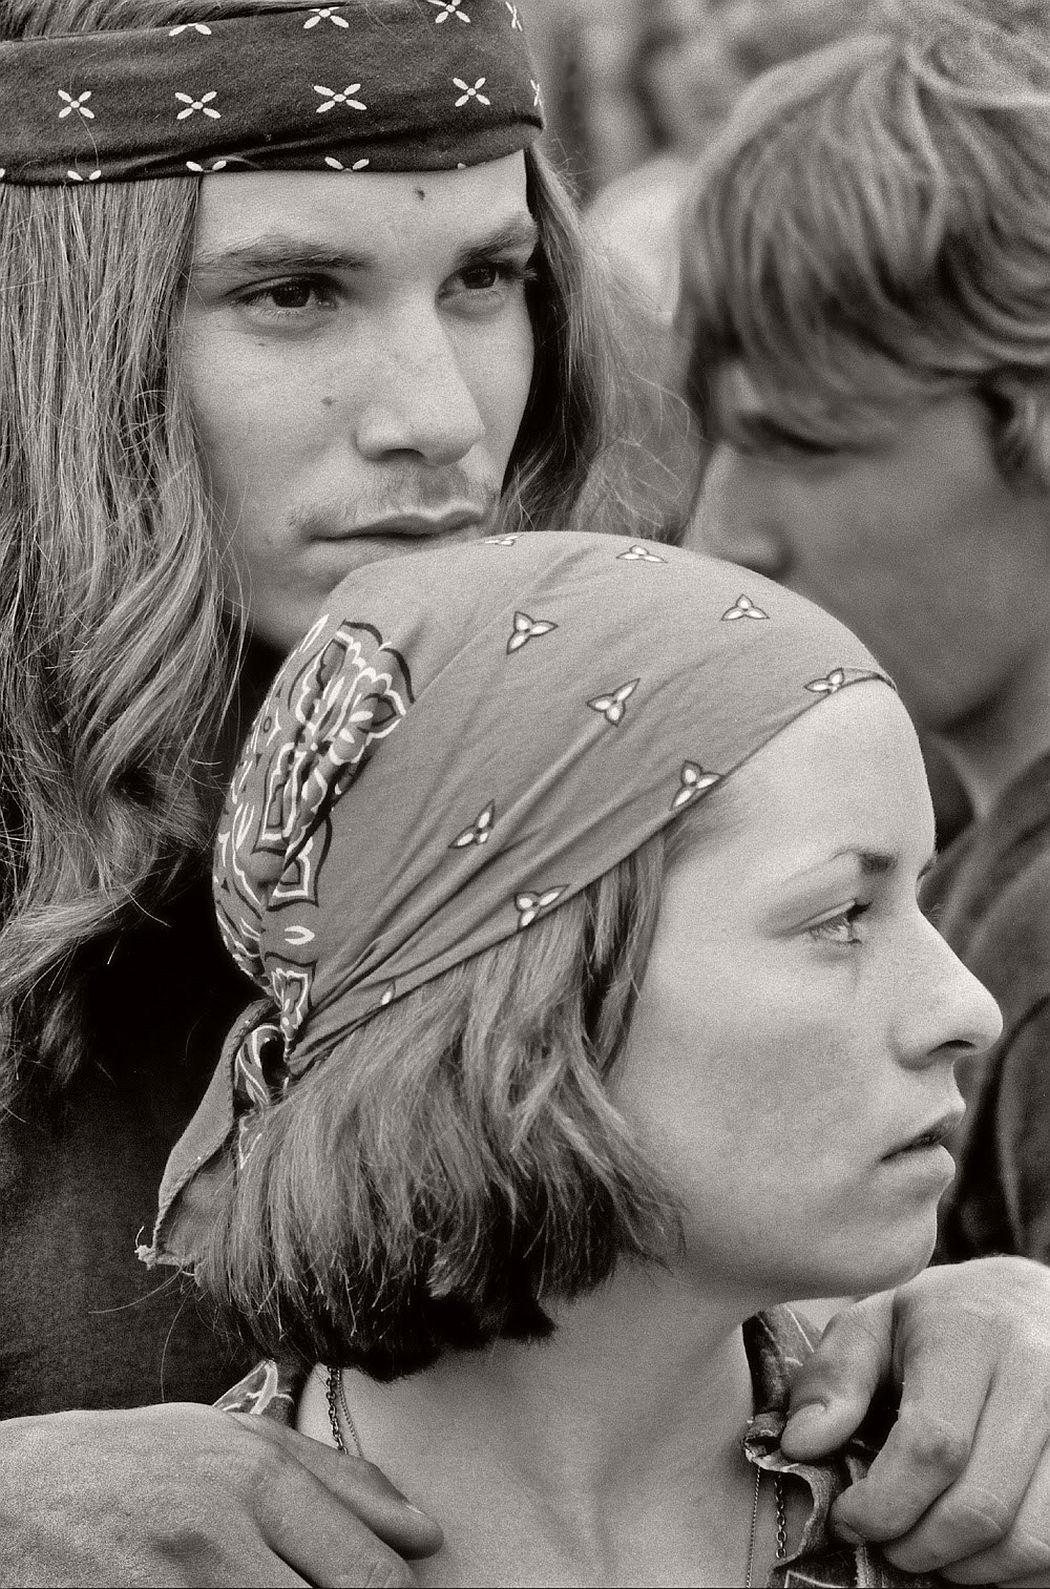 vintage-bw-photos-of-rolling-stones-fans-by-joseph-szabo-1978-08